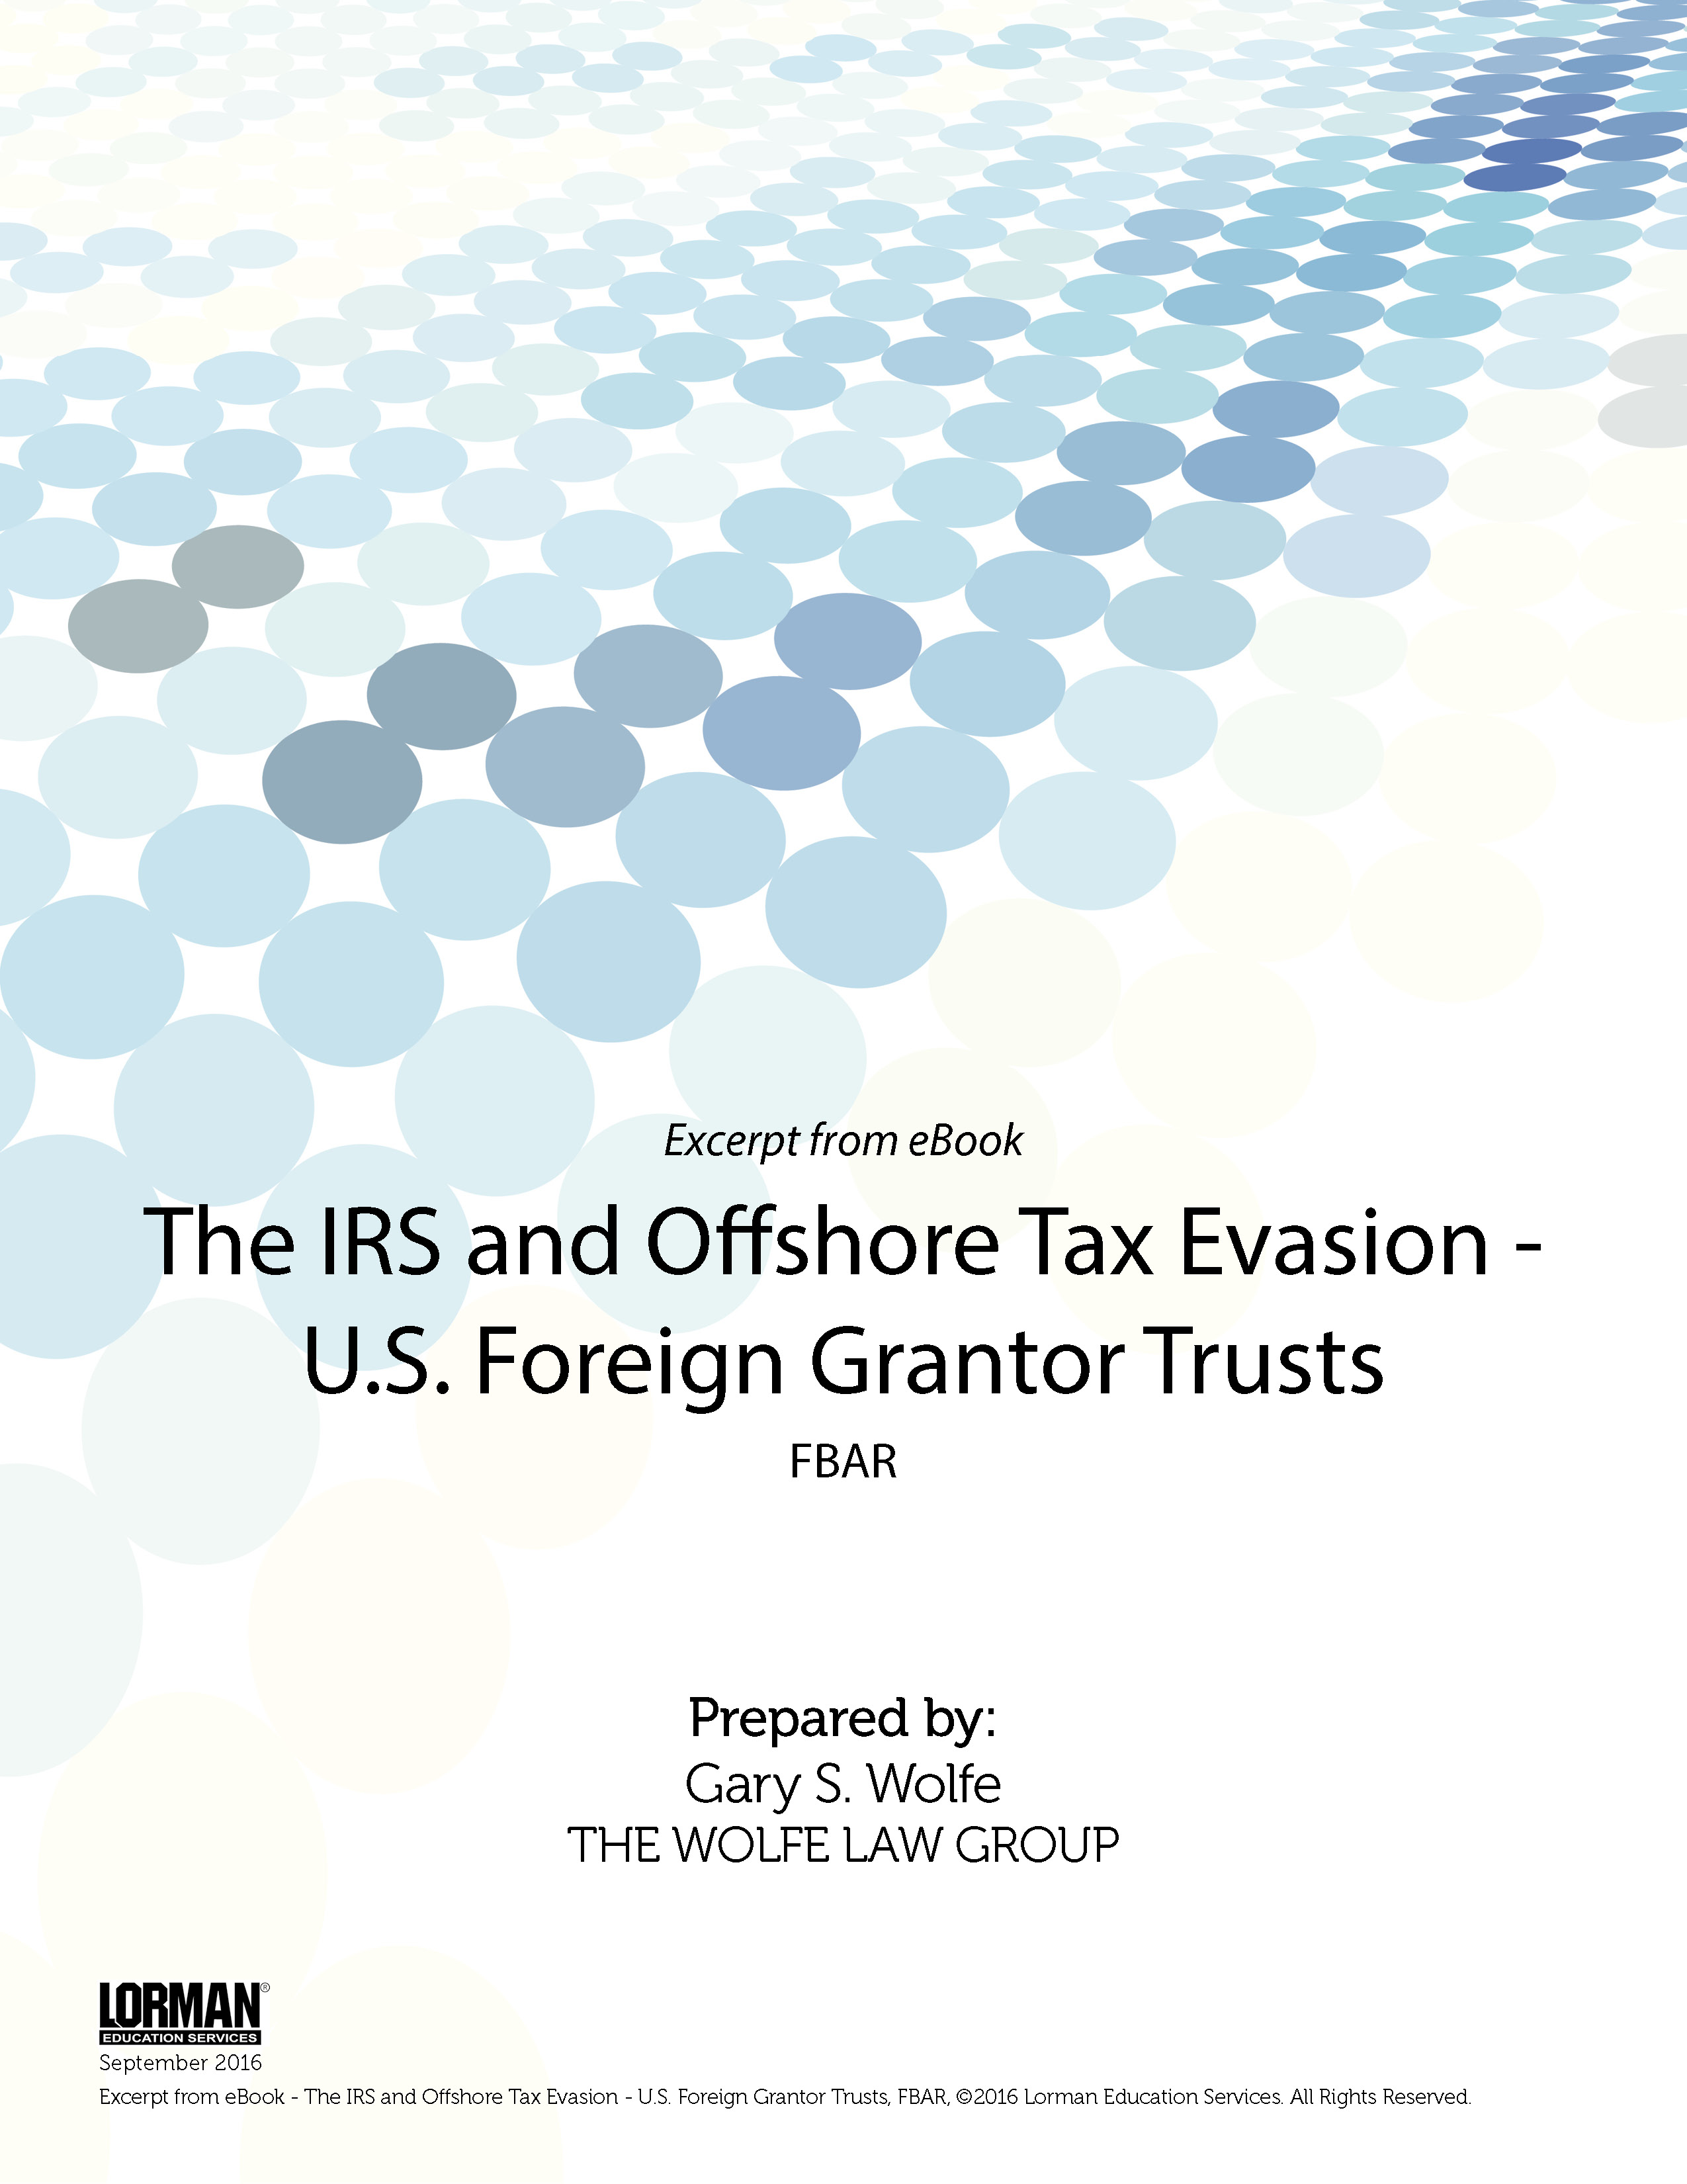 The IRS and Offshore Tax Evasion - U.S. Foreign Grantor Trusts: FBAR